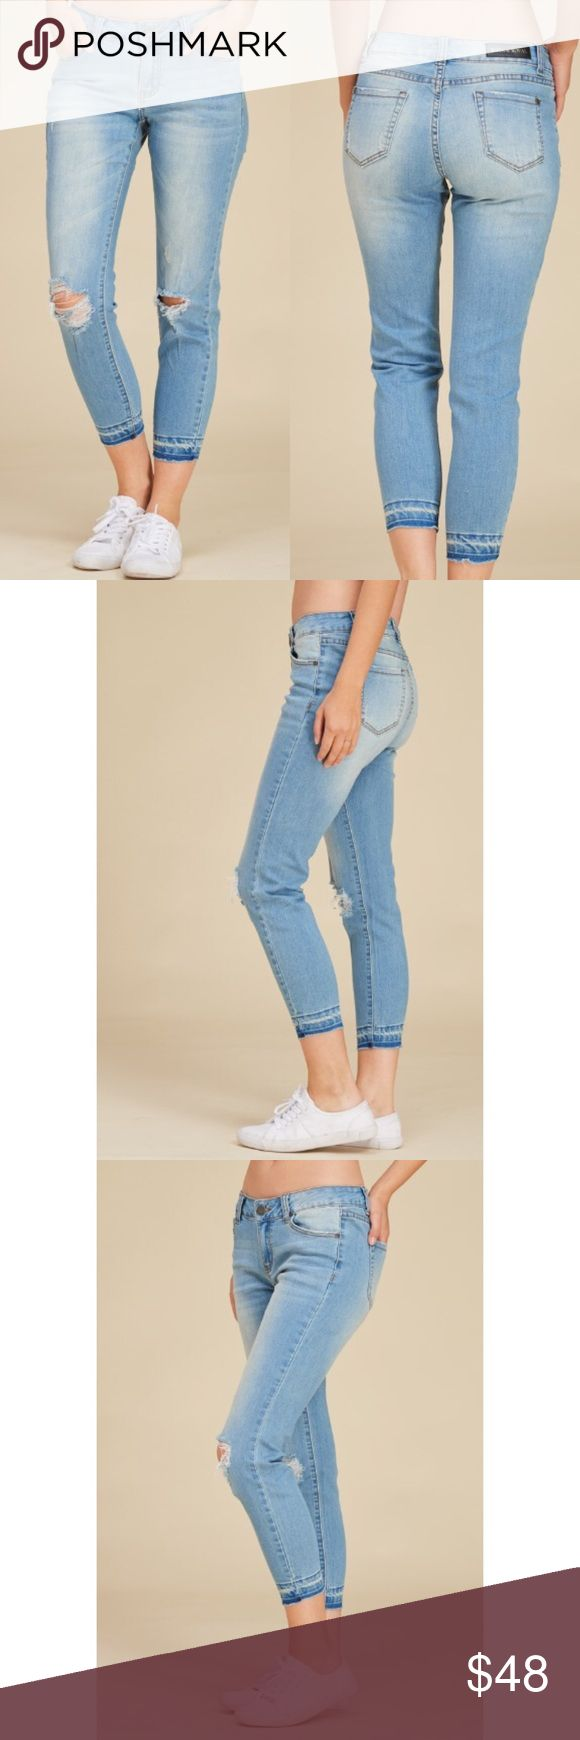 🆕 Selena Cropped Jeans 👑 Light Denim Cropped Jeans With Knee Distressed Detail. Great stretch. 98% Cotton, 2% Spandex •Imported Jubis Boutique Jeans Ankle & Cropped